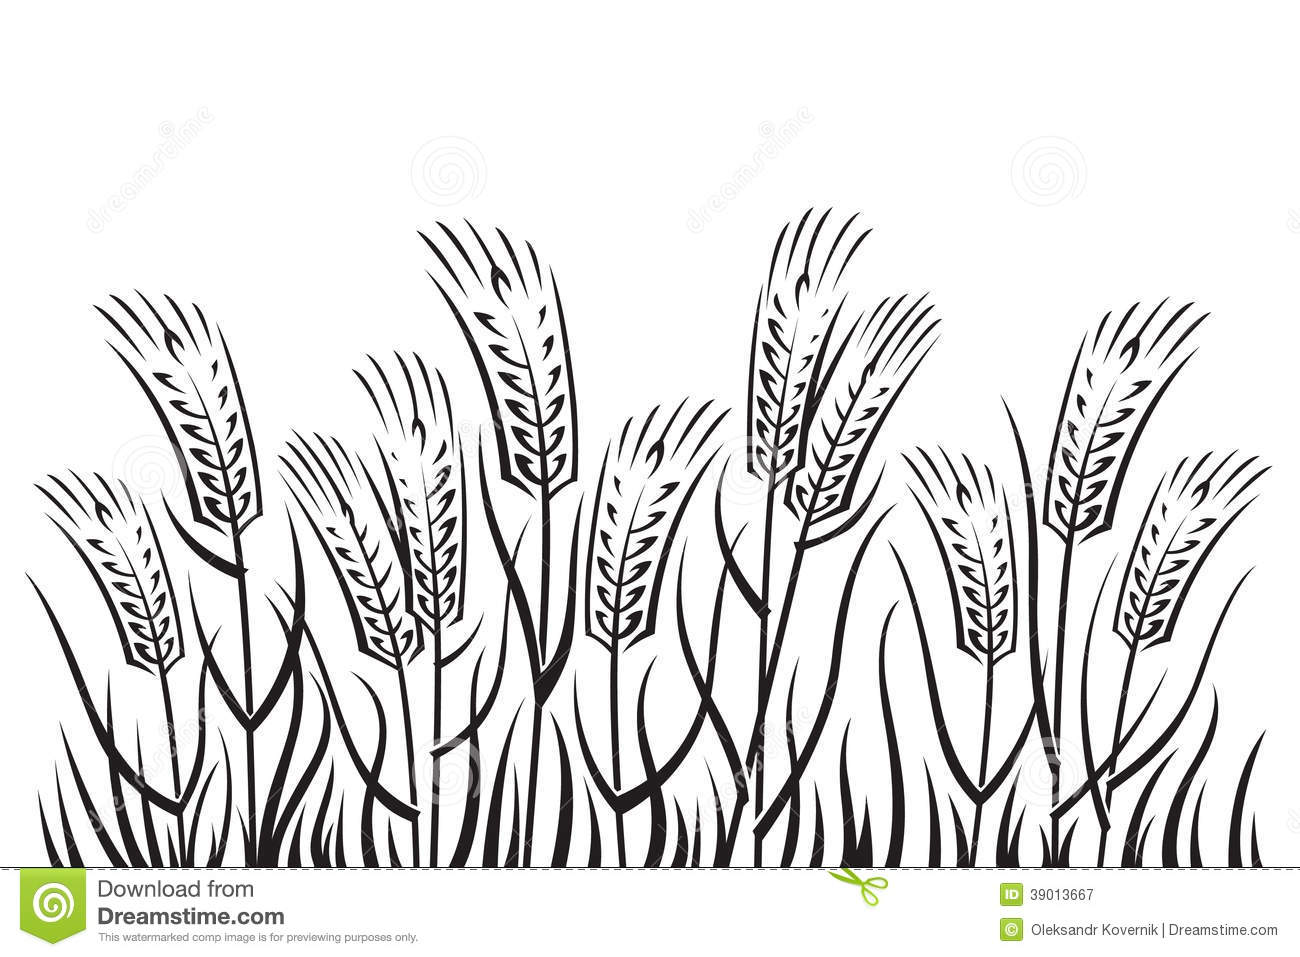 Wheat Sheaf Cliparts, Stock Vector And Royalty Free Wheat Sheaf  Illustrations